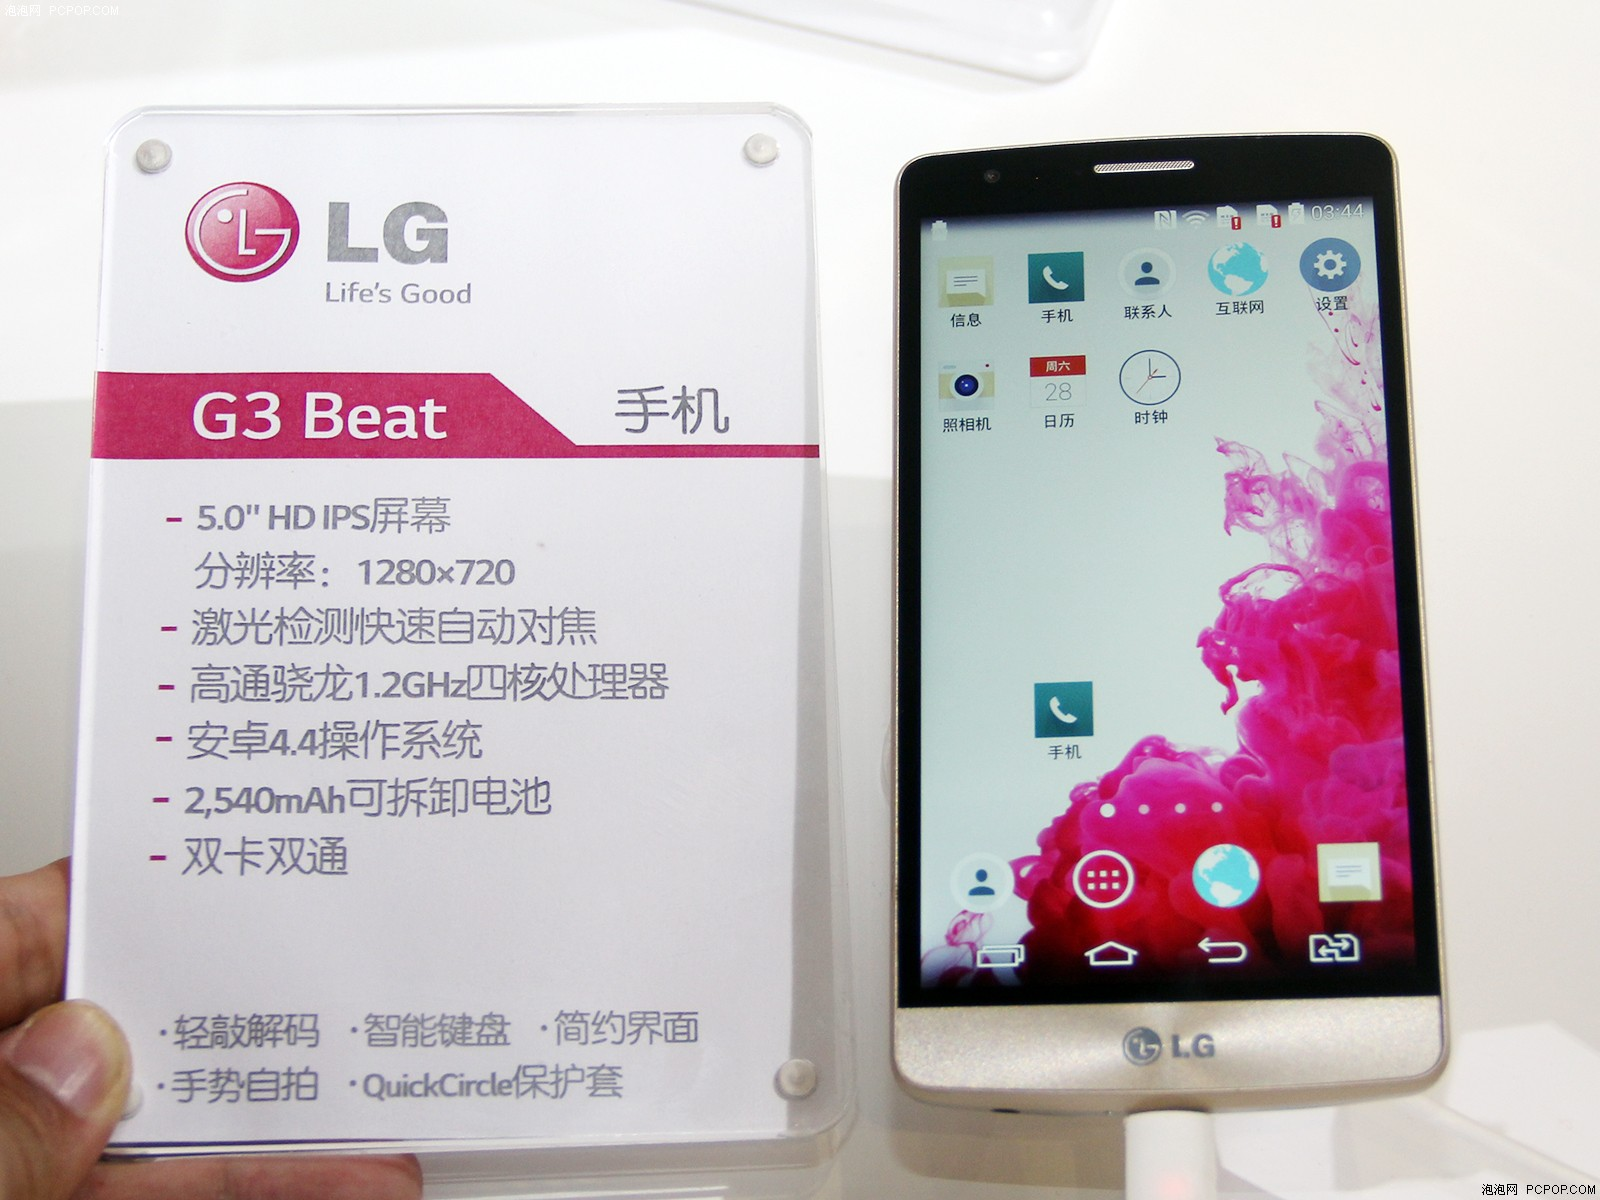 cdd2fd53fe1 LG G3 Mini leaks under the LG G3 Beat moniker | AIVAnet